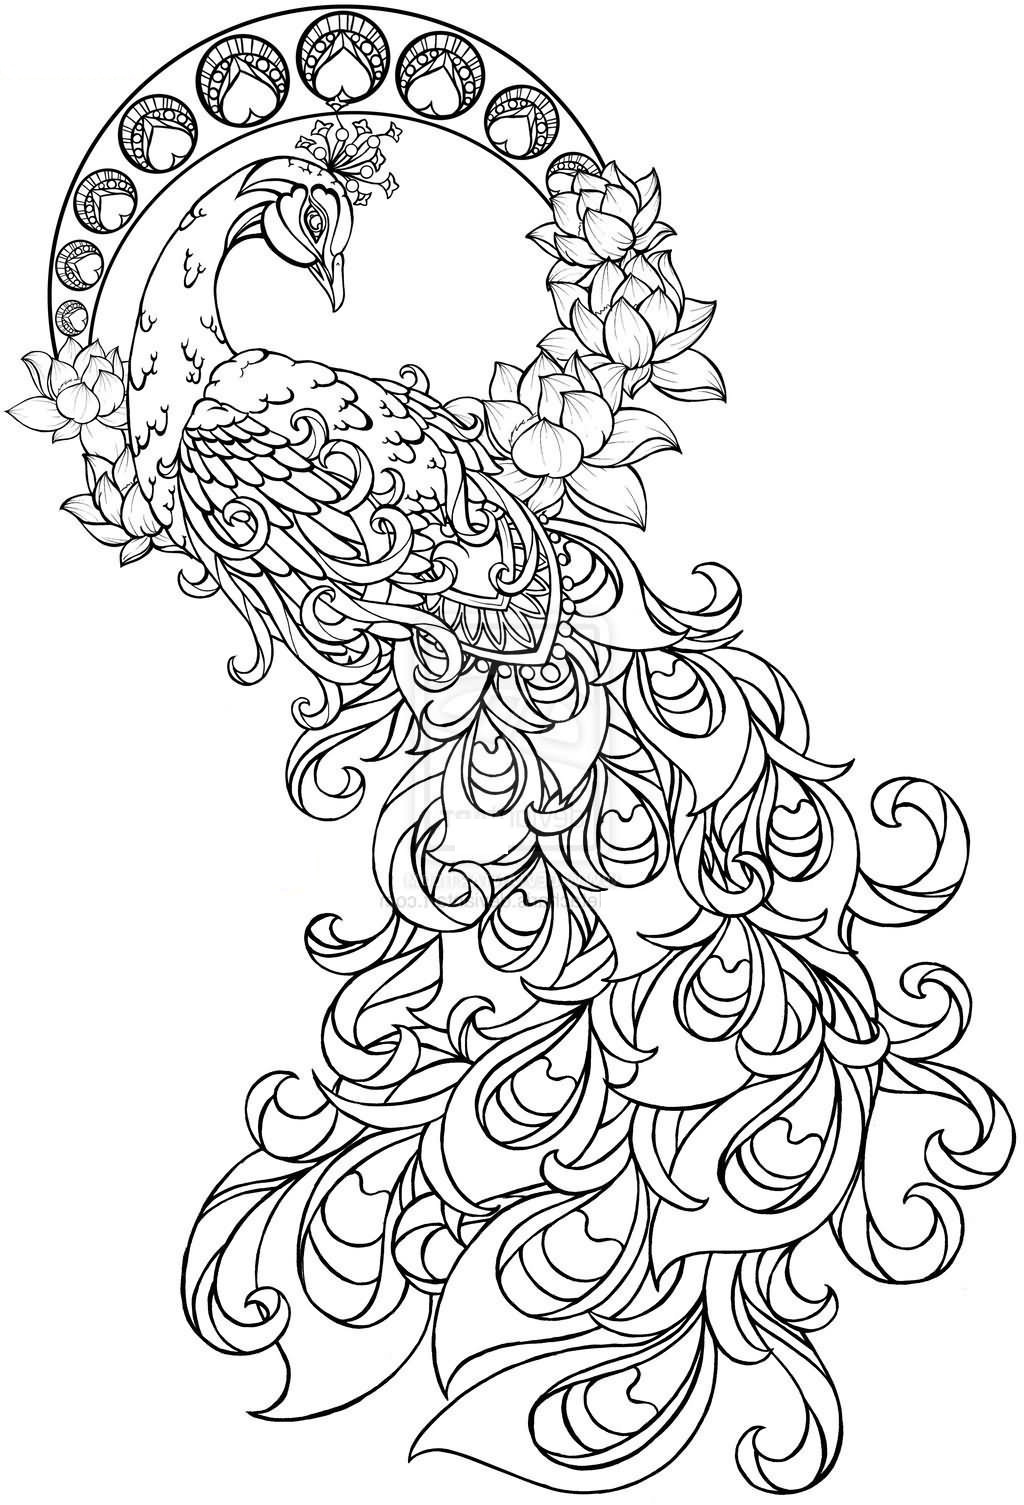 peacock pictures to color peacocks to color for kids peacocks kids coloring pages color pictures to peacock